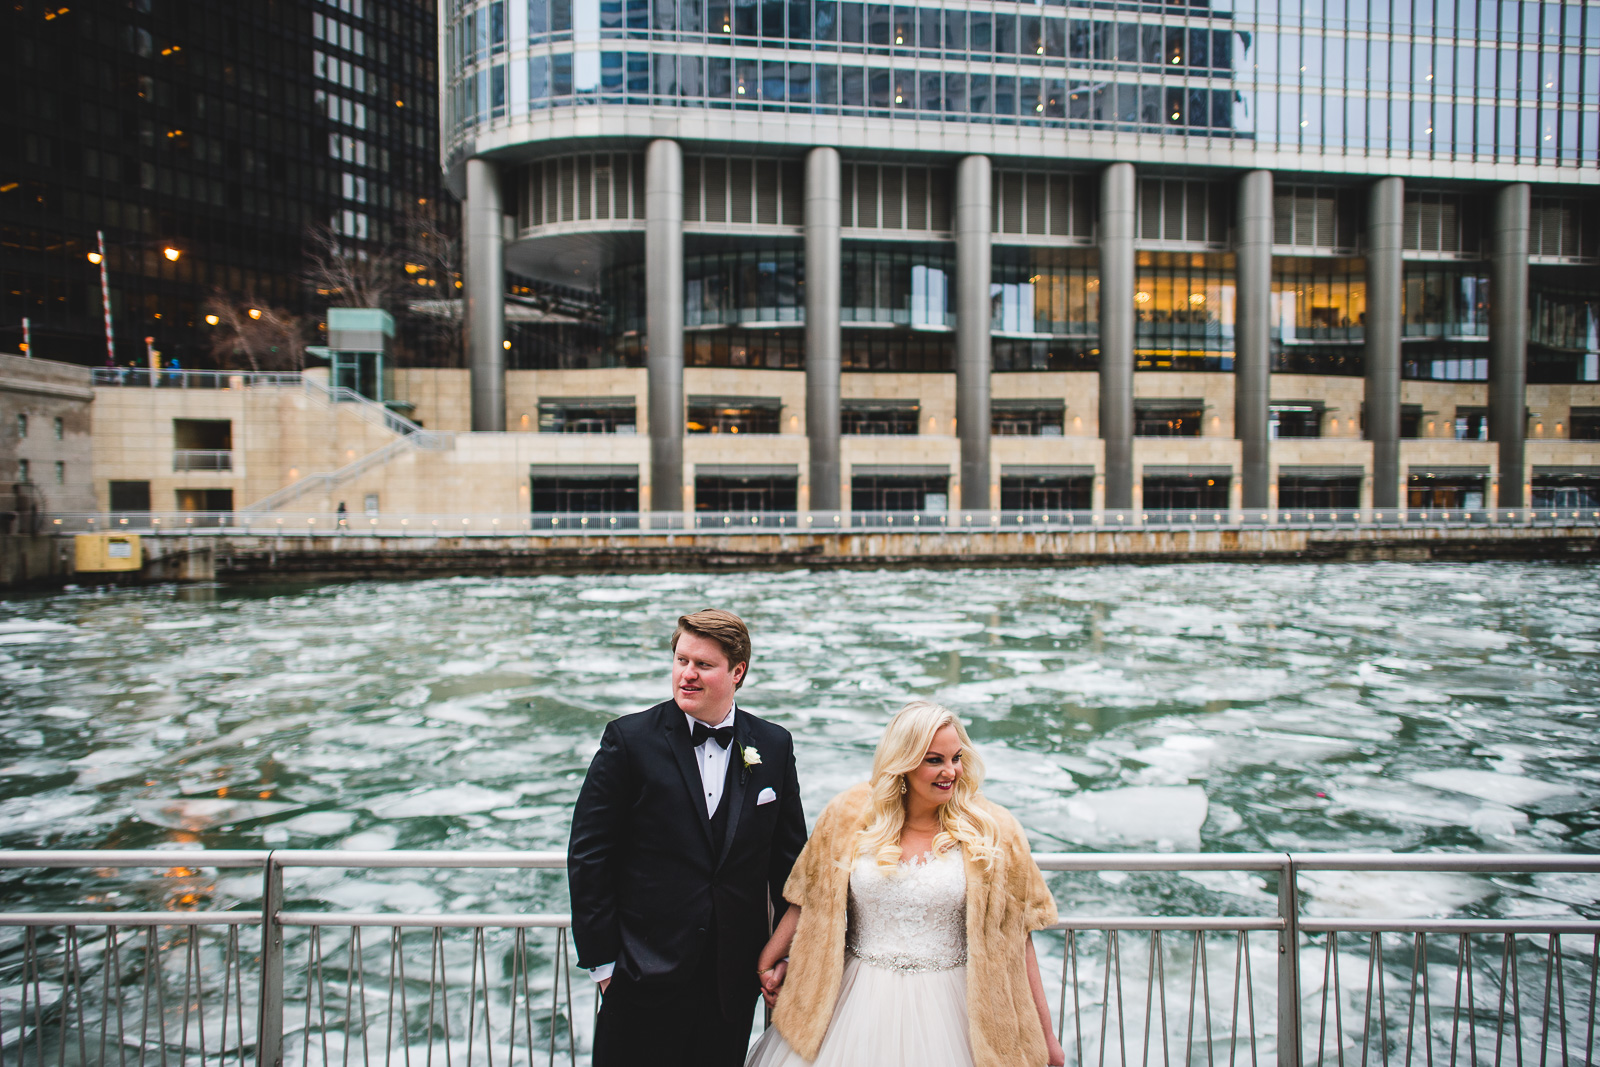 4 chicago wedding photographer best portraits during weddings review 1 - 2018 in Review // My Favorite Chicago Wedding Photography Portraits